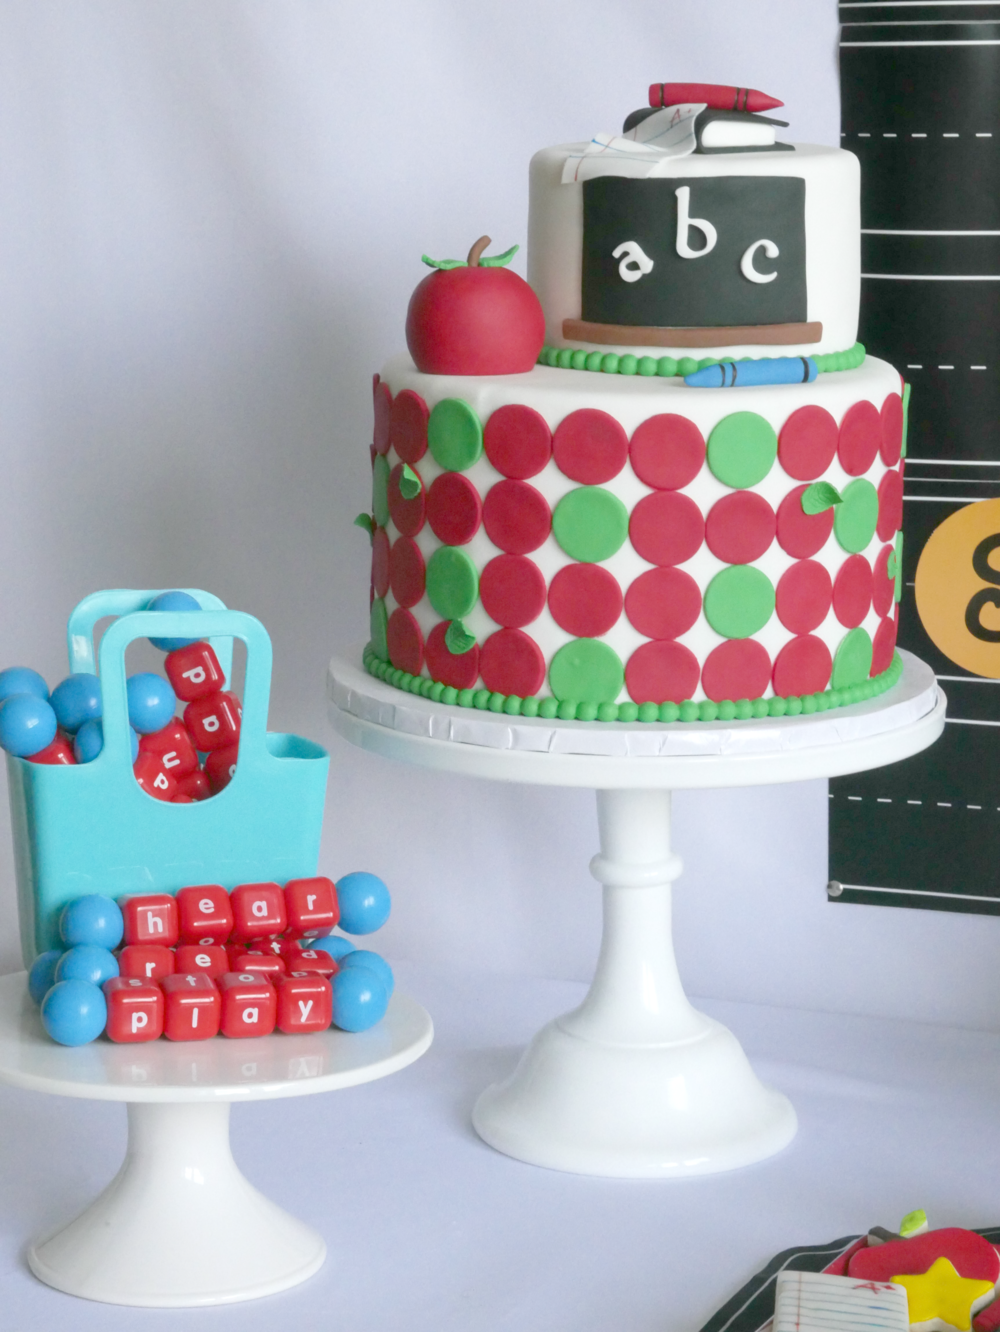 Two tiered school themed cake, with spelling toys perfect for a back to school party! Love all the party decorations and desserts.